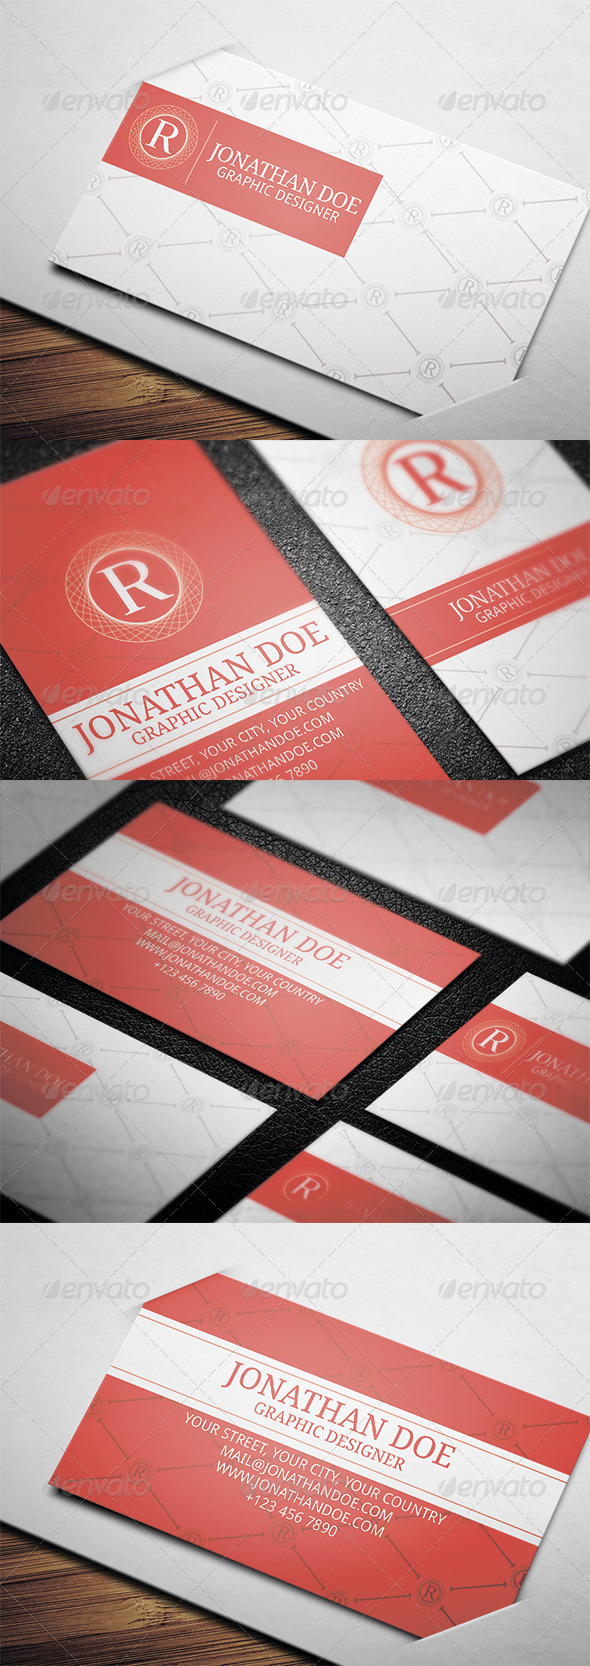 GraphicRiver Creative Business Card N4 3540937